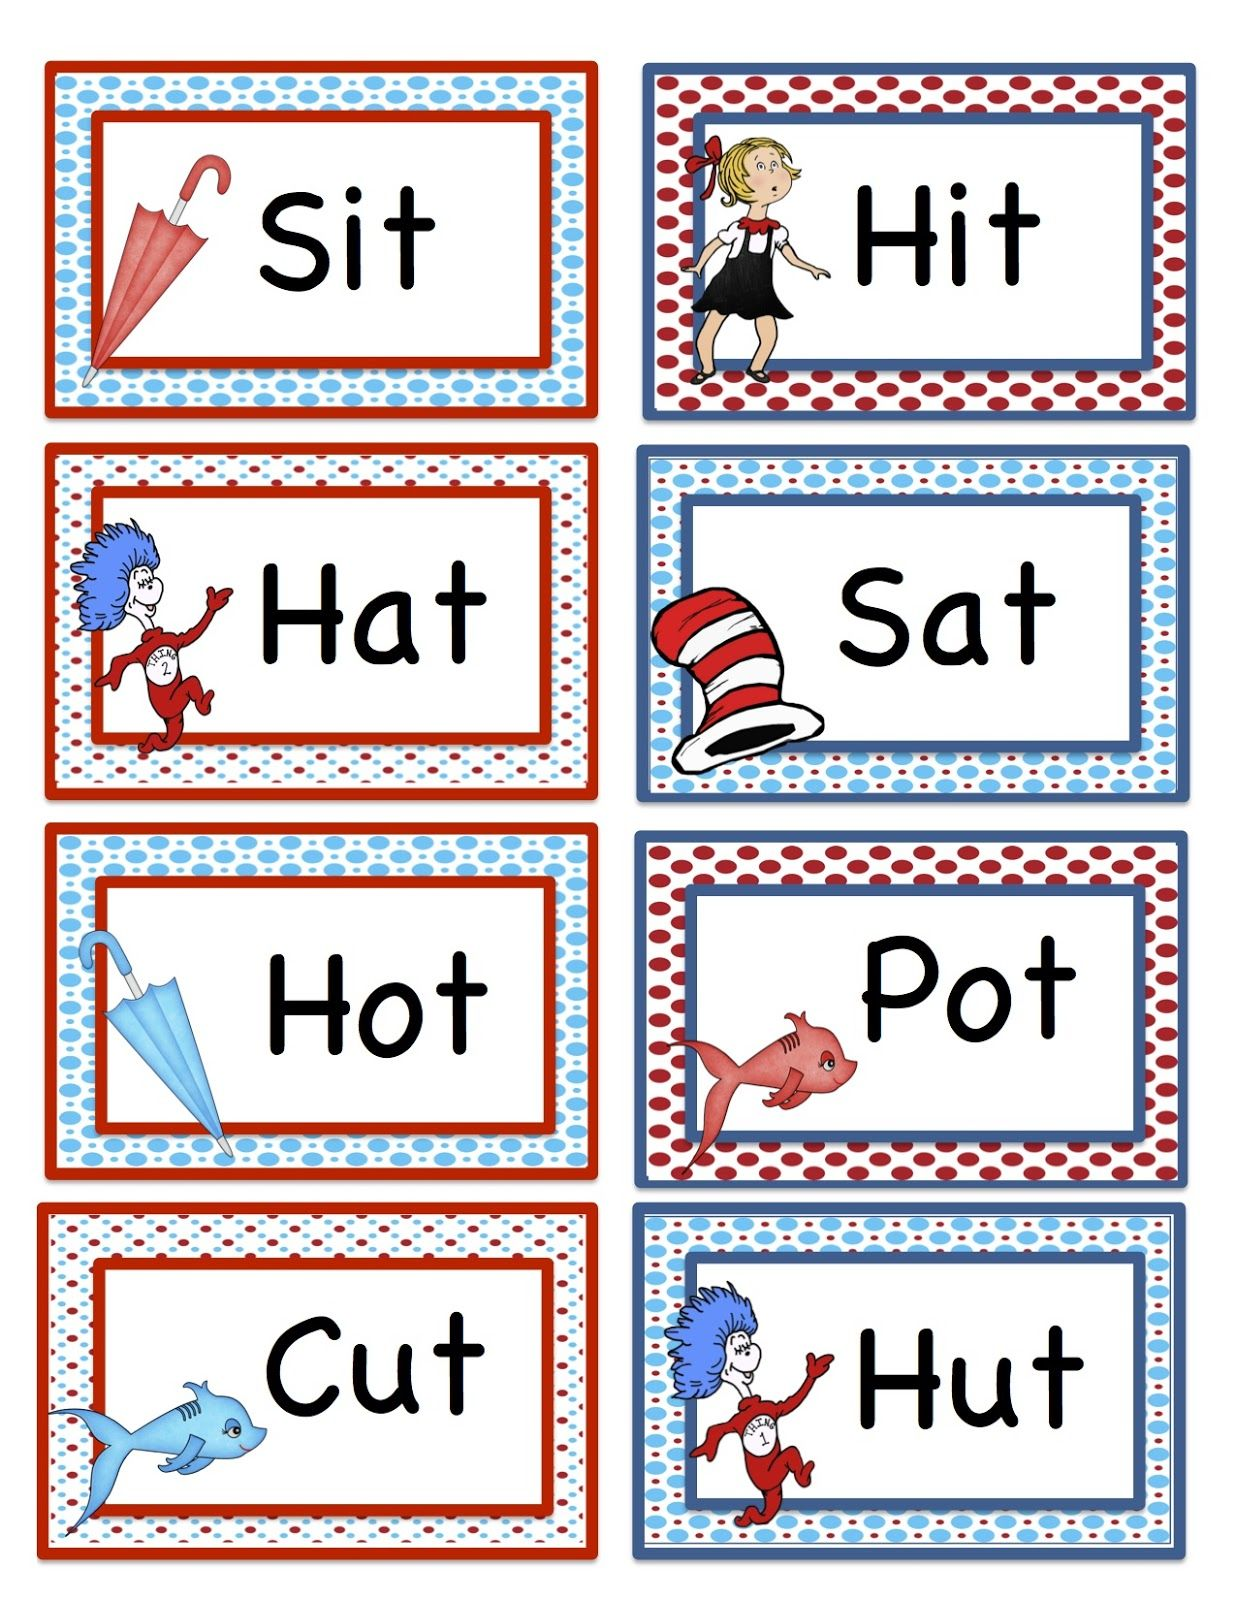 Worksheets List Of Rhyming Words For Kids free dr suess printables preschool seuss rhyming words printable 2